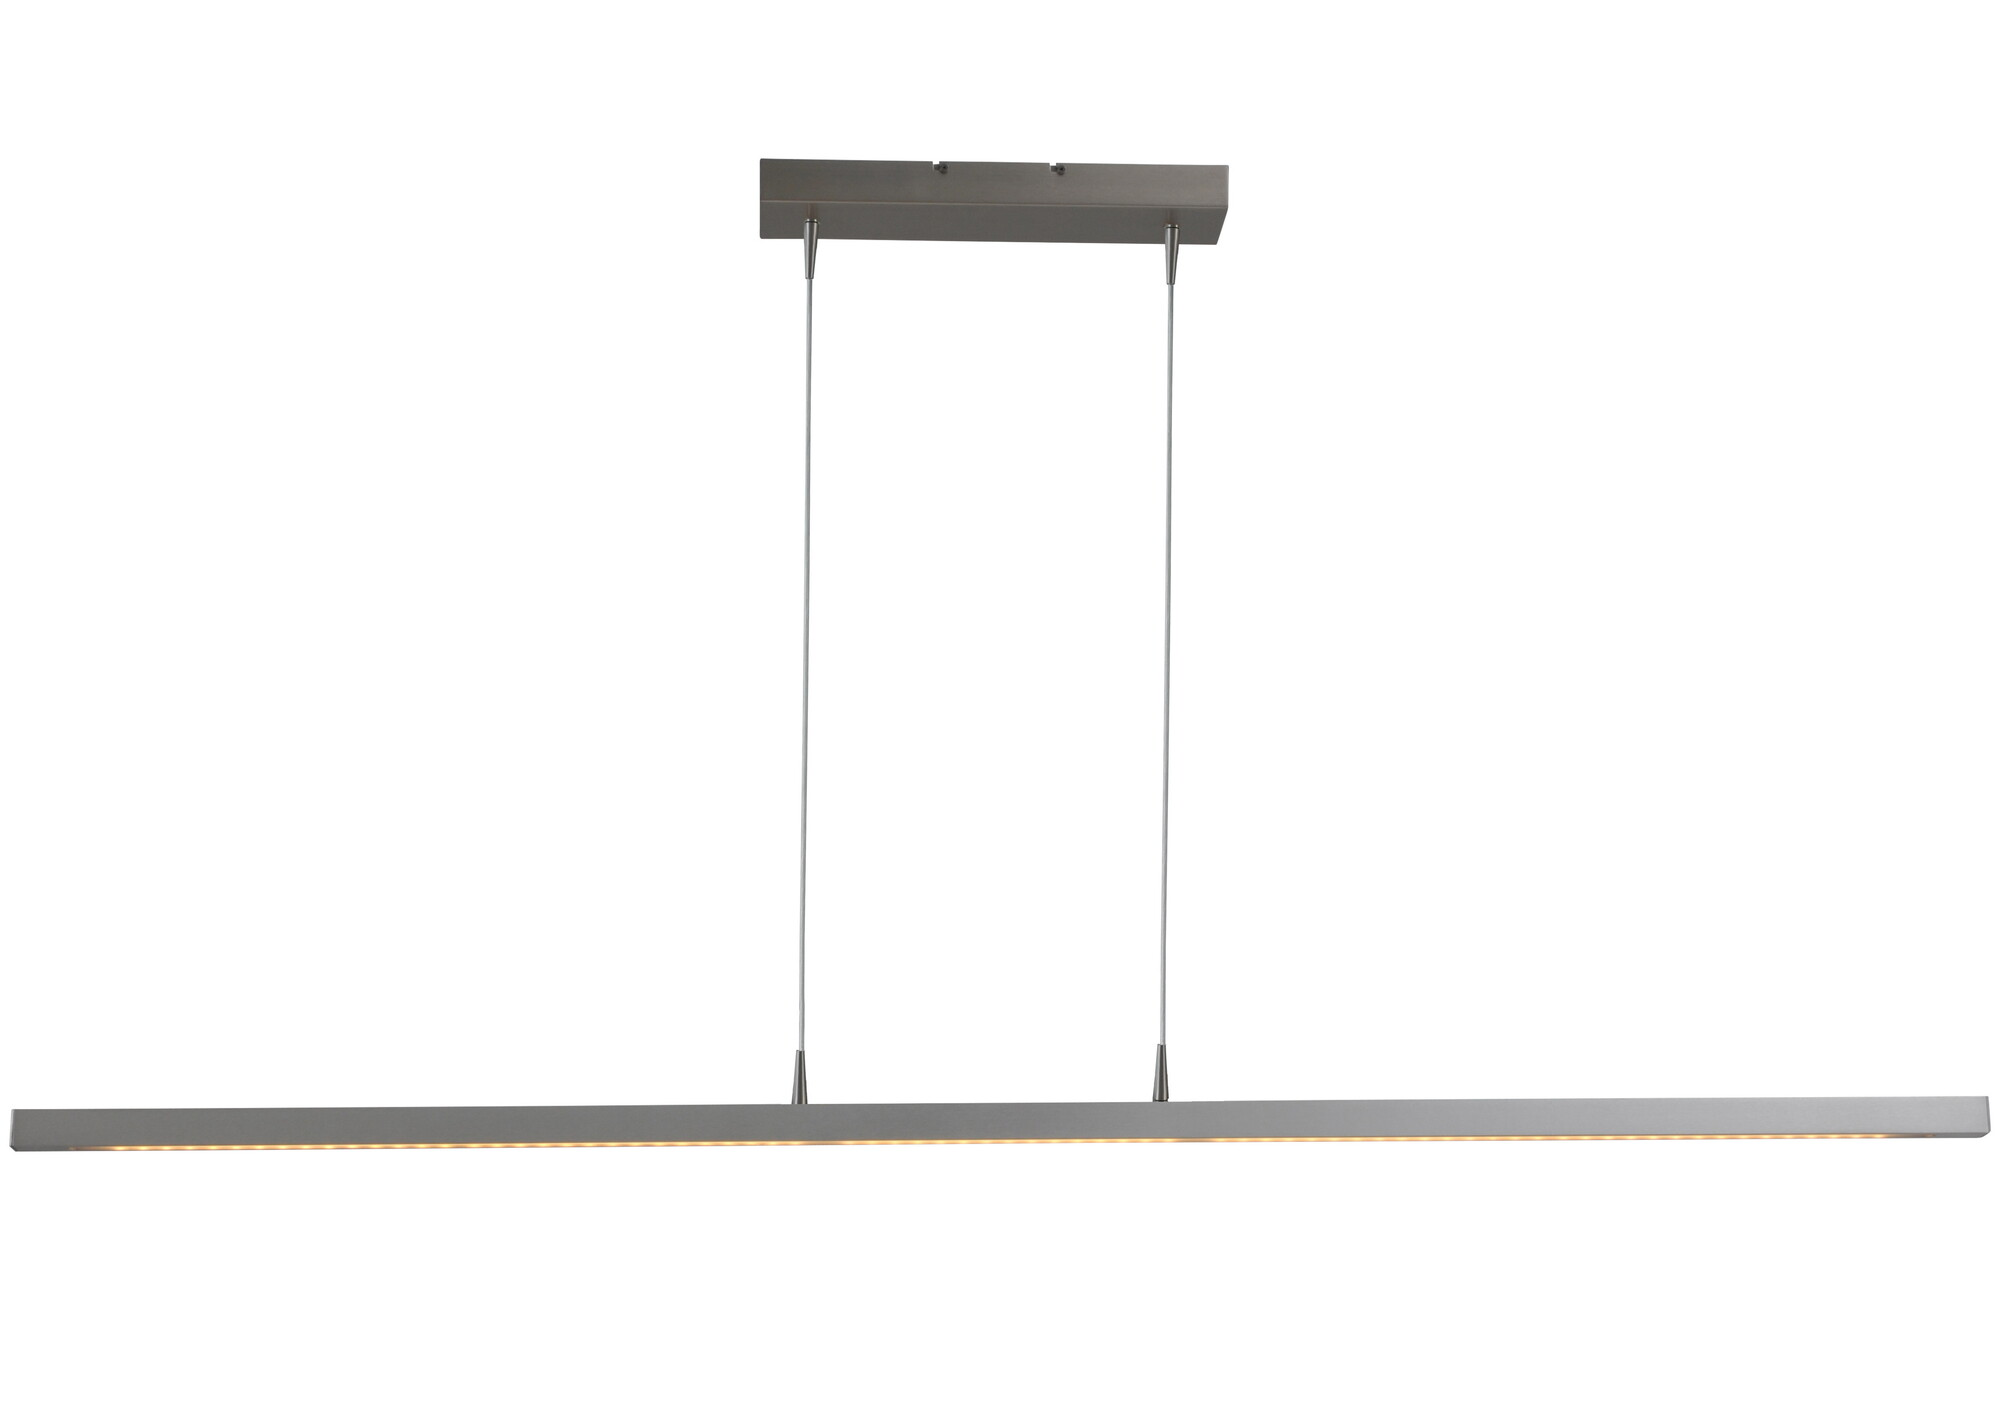 REAL Hanglamp LED 1x40W/6270lm Zilver